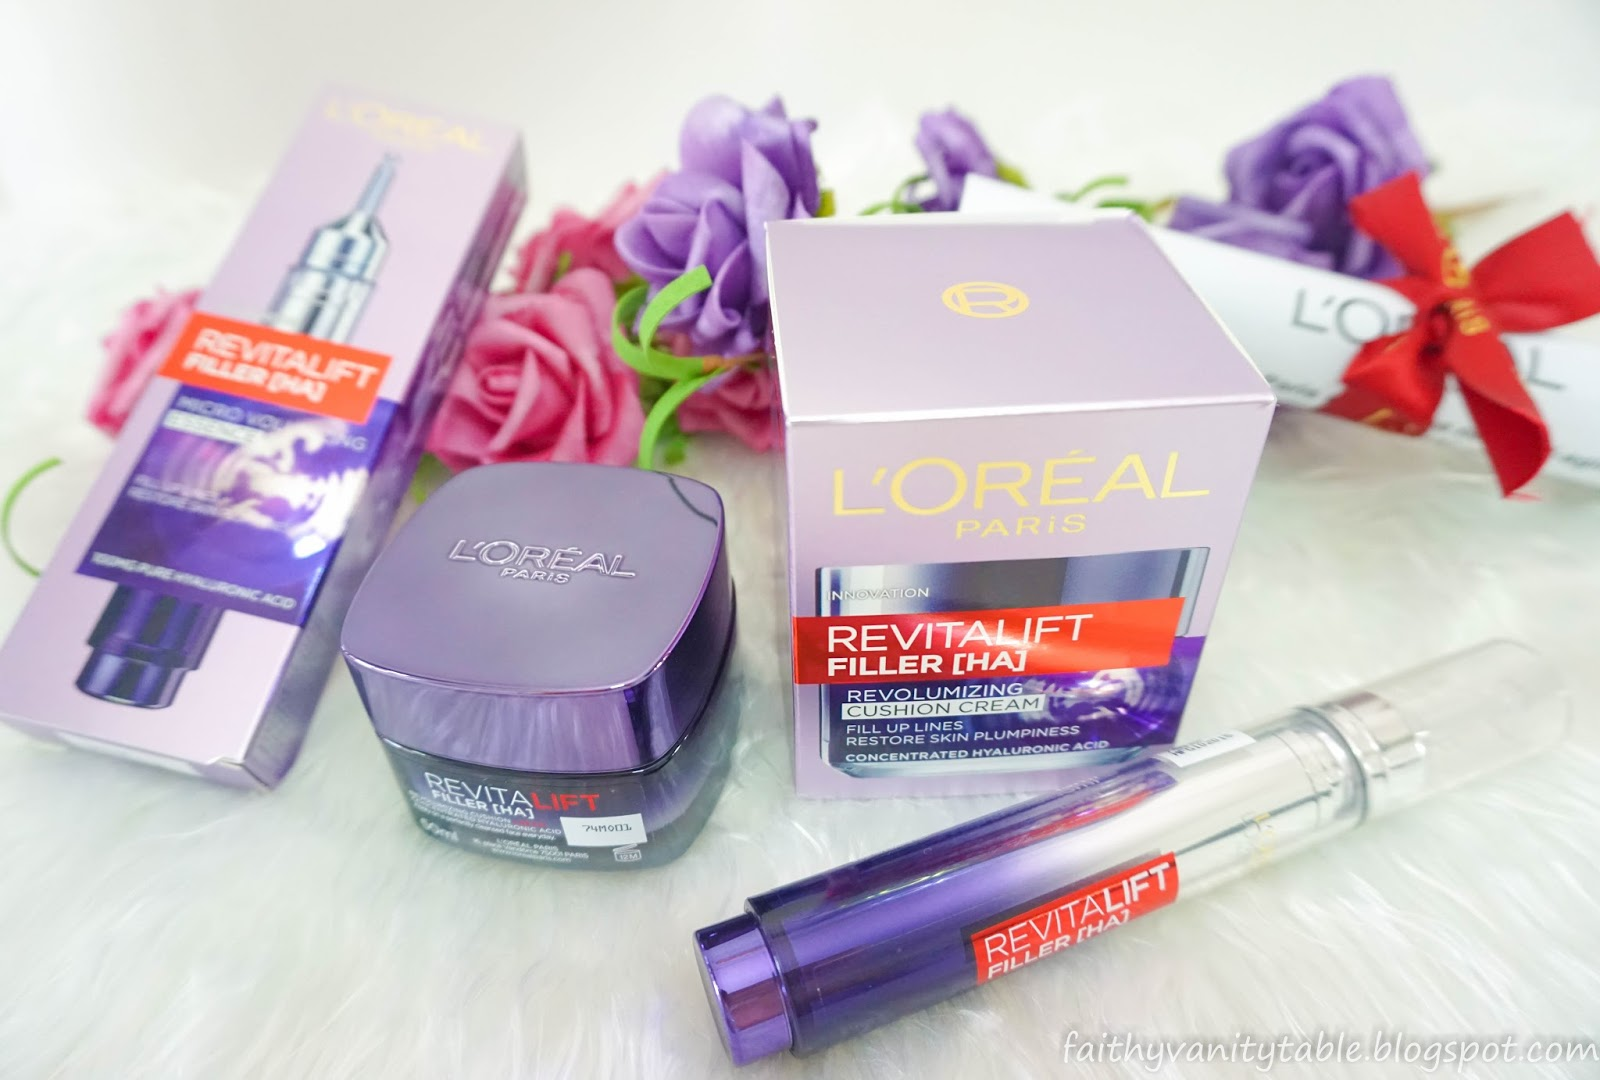 REVITALIFT FILLER [HA] collection by L'oreal Paris